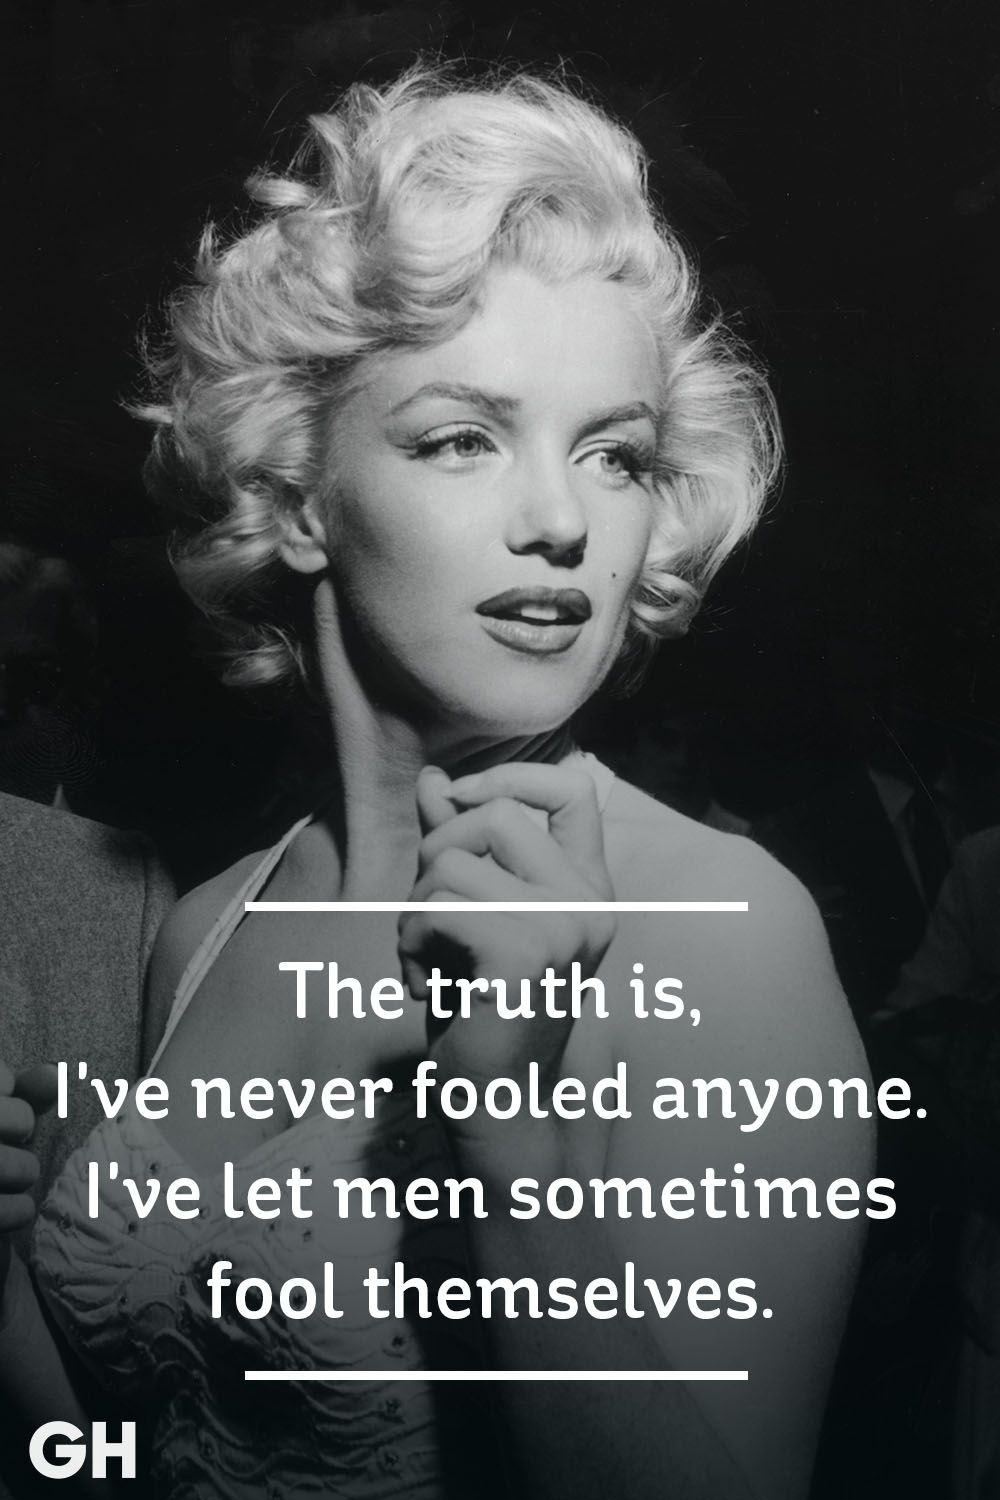 Marilyn Monroe Quotes 27 Best Marilyn Monroe Quotes on Love and Life Marilyn Monroe Quotes